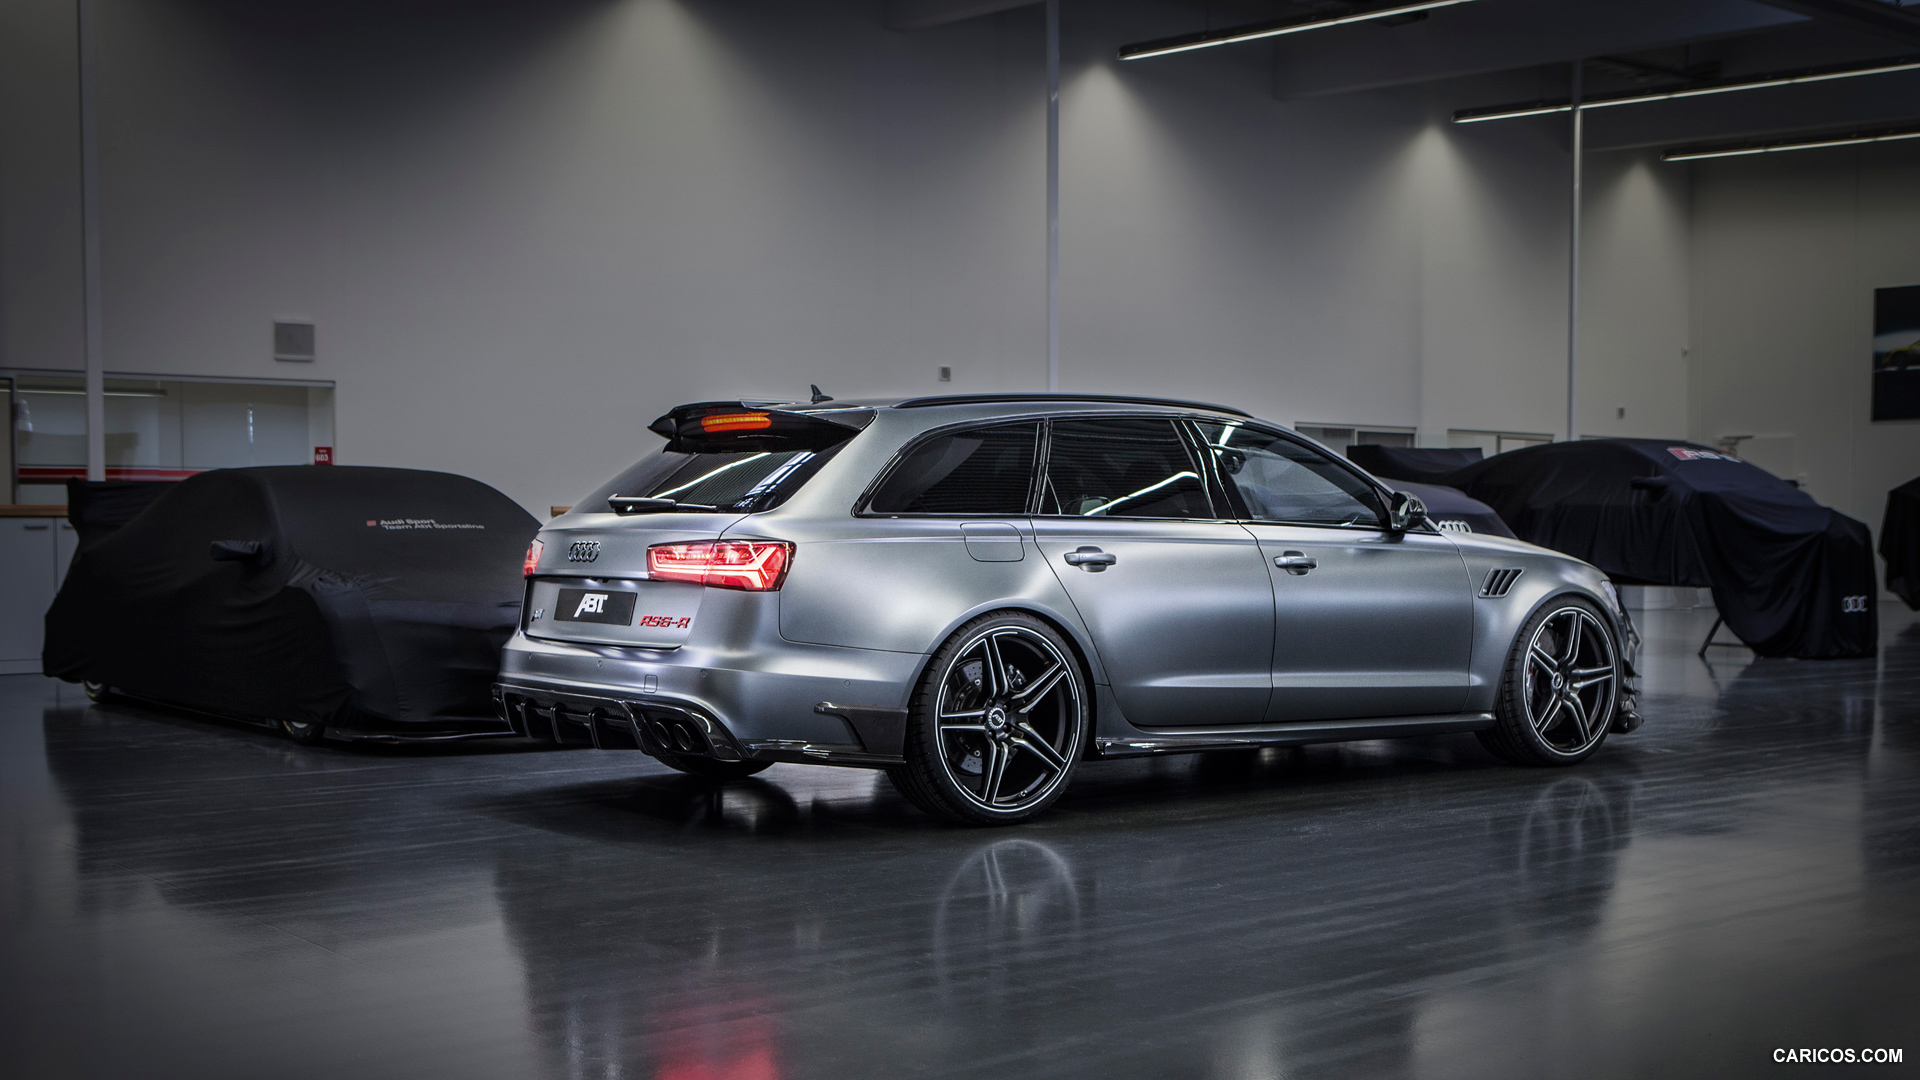 1920x1080 - Audi RS6 Wallpapers 27